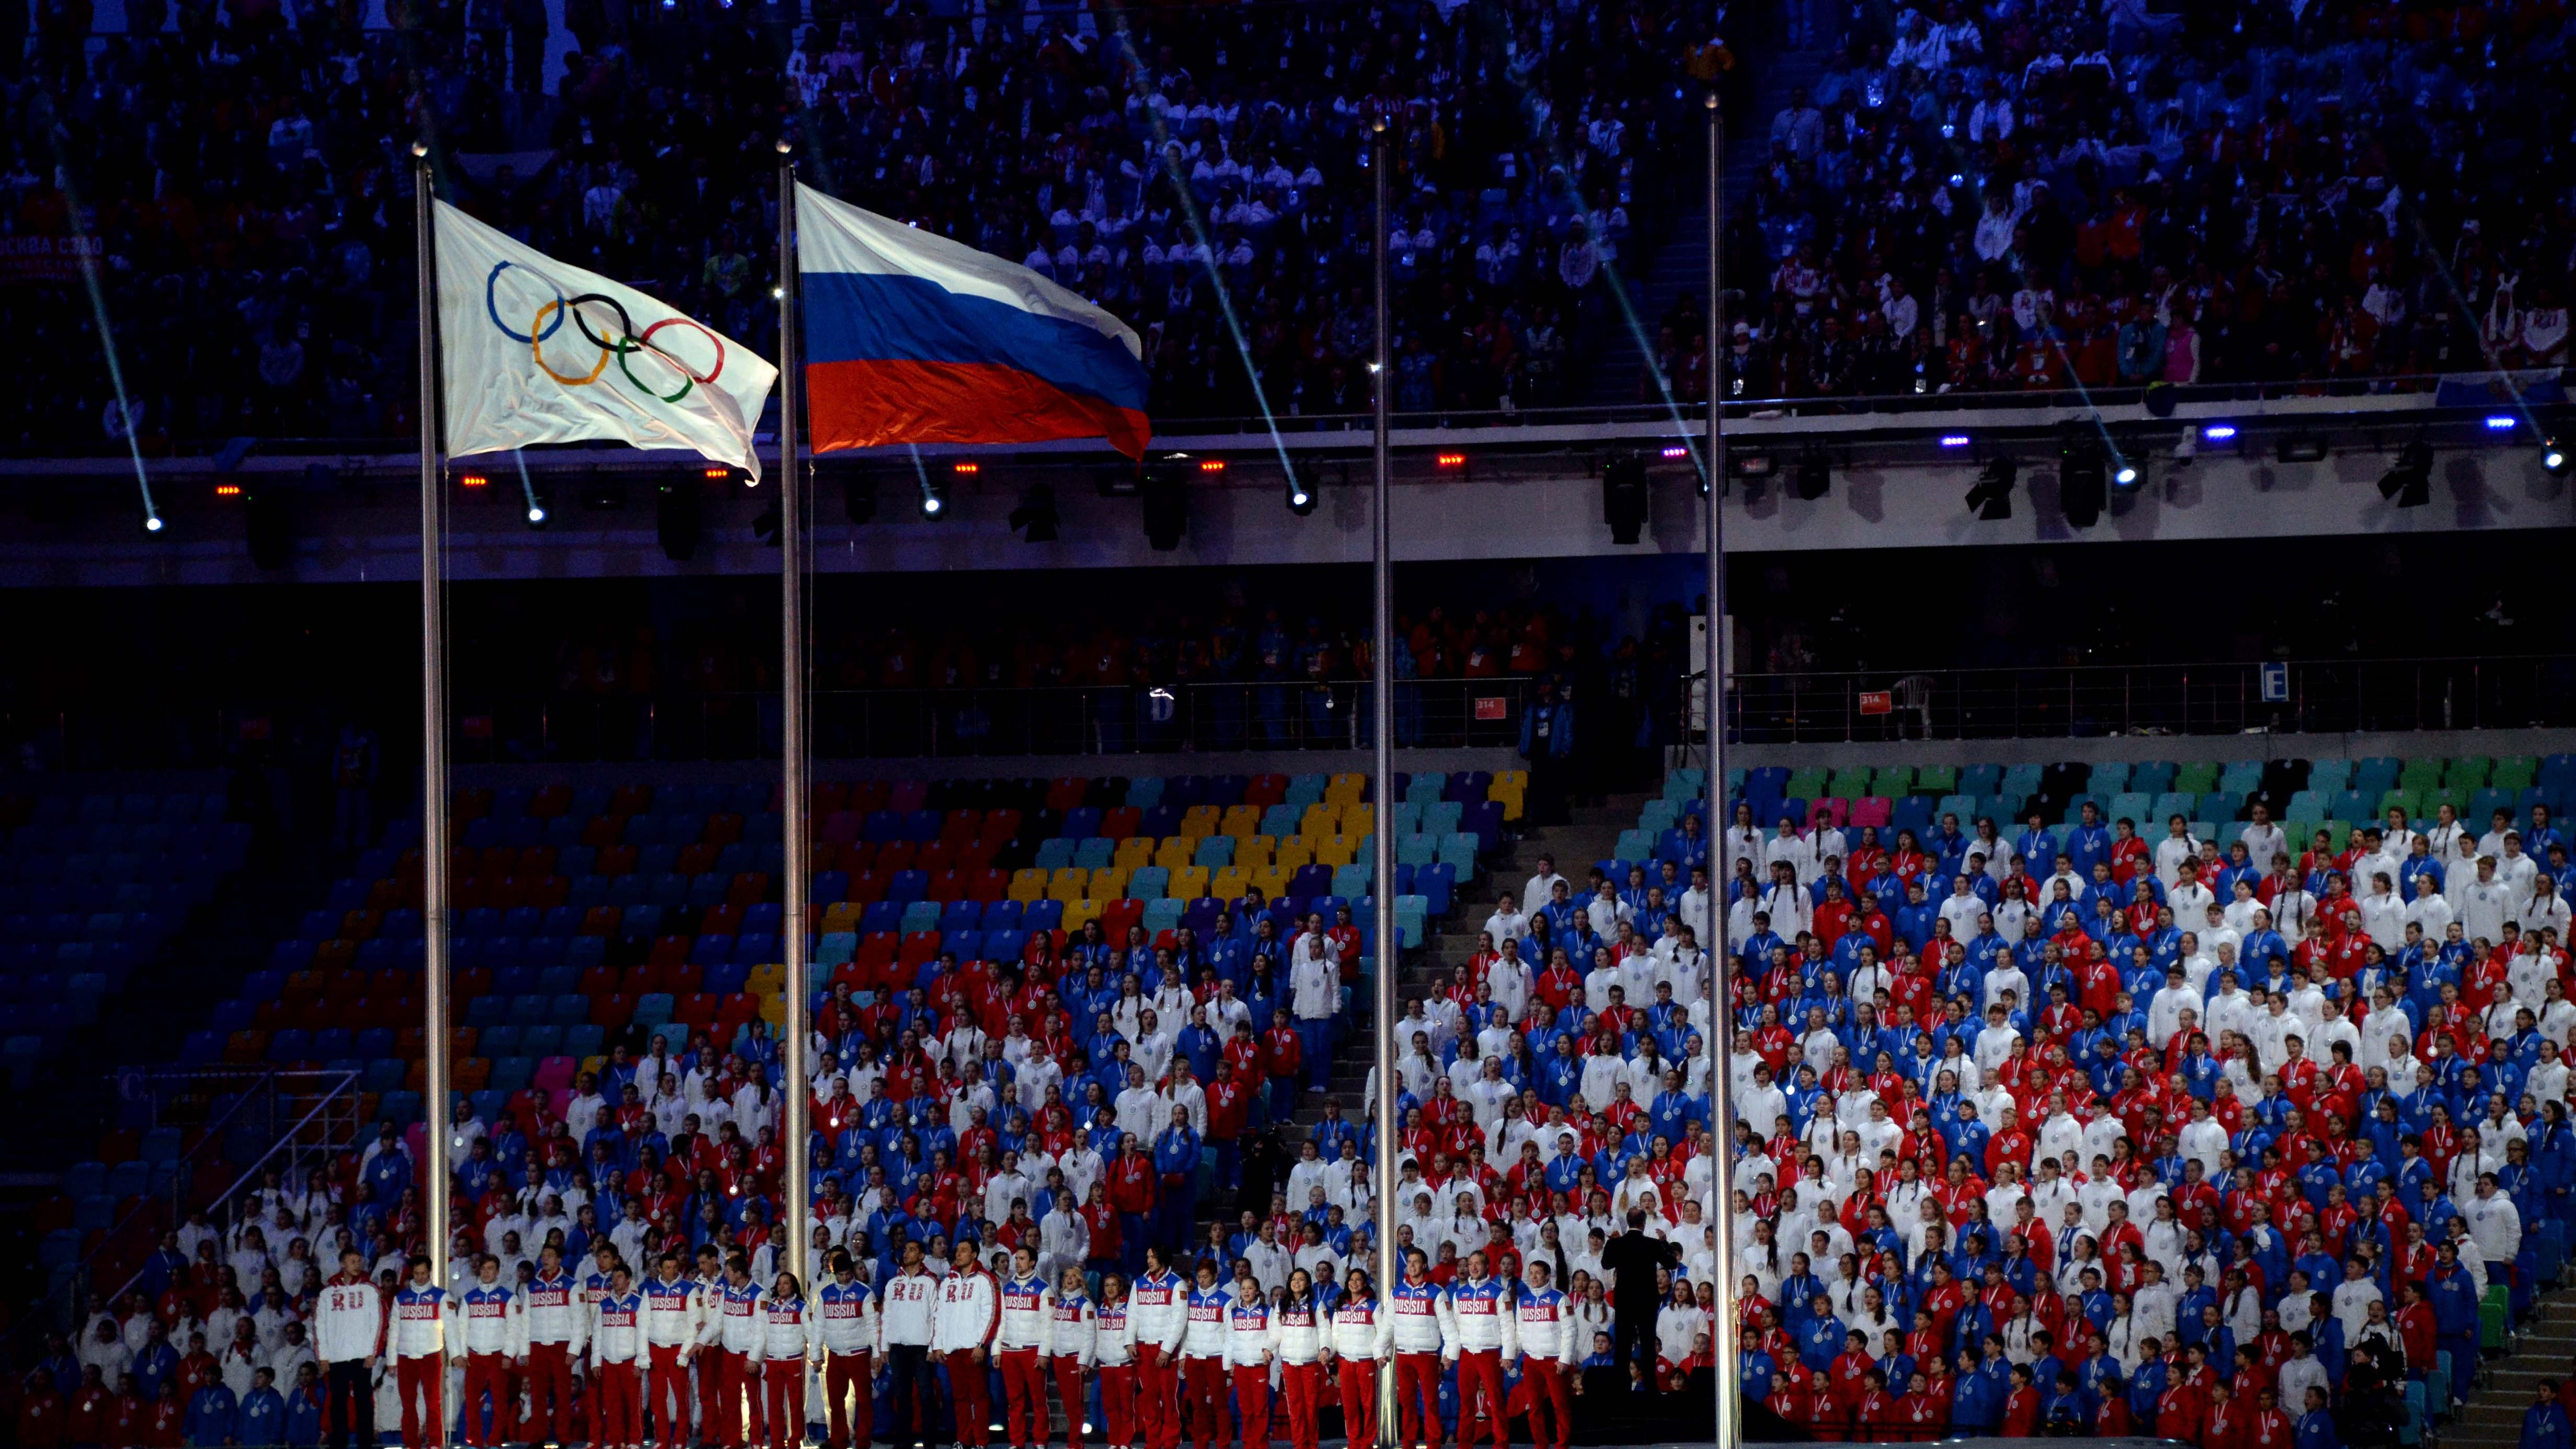 Russian gold medalists are seen on stage as the flag is raised next to the Olympic flag during the closing ceremony for the Sochi 2014 Olympic Winter Games.